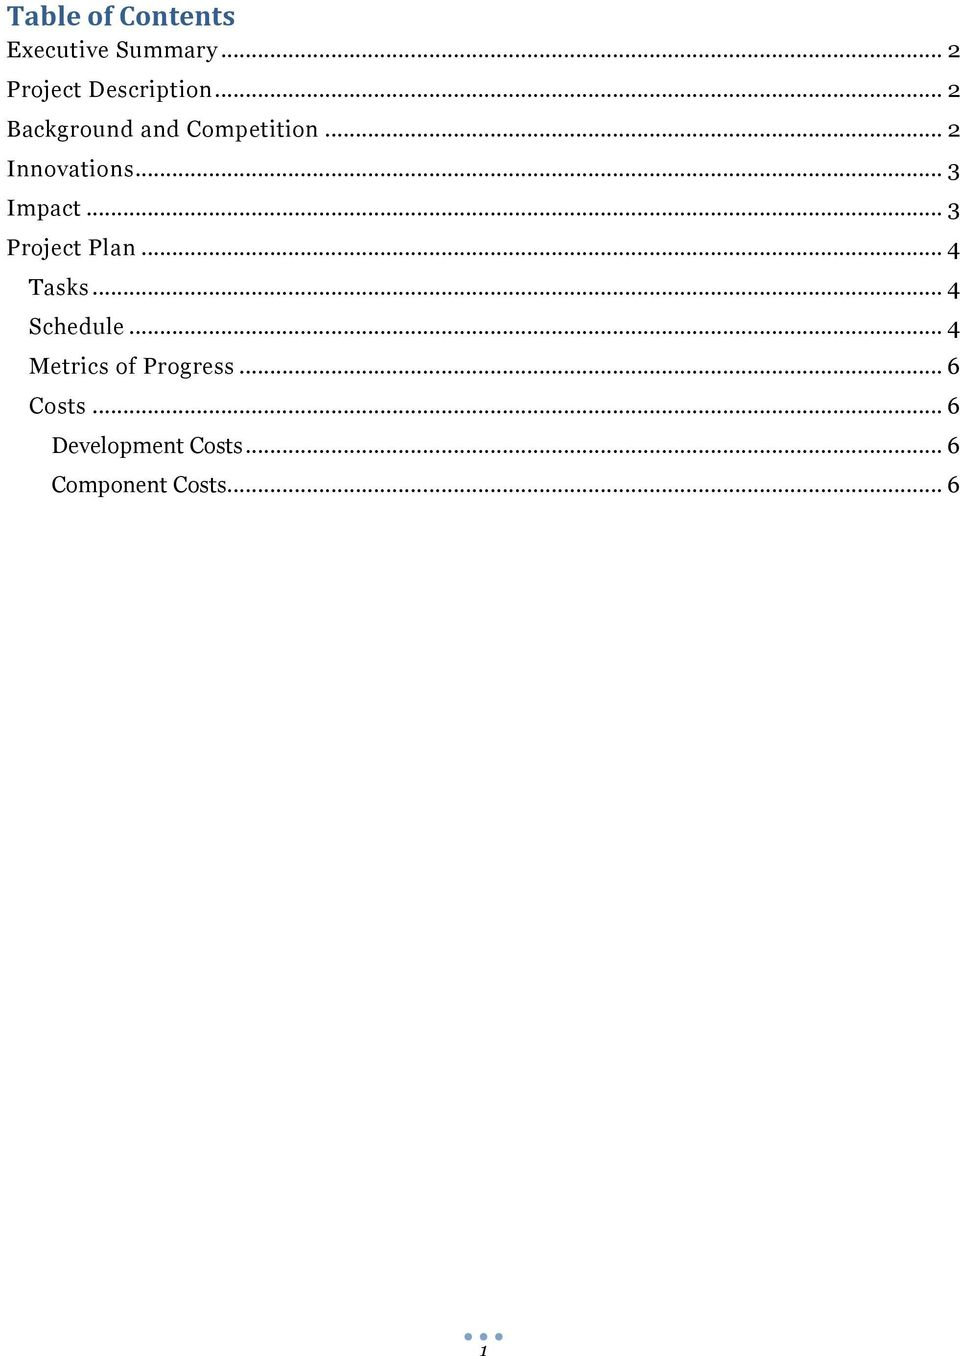 Automated garden monitoring system pdf for Table 6 4 cobol conversion project schedule